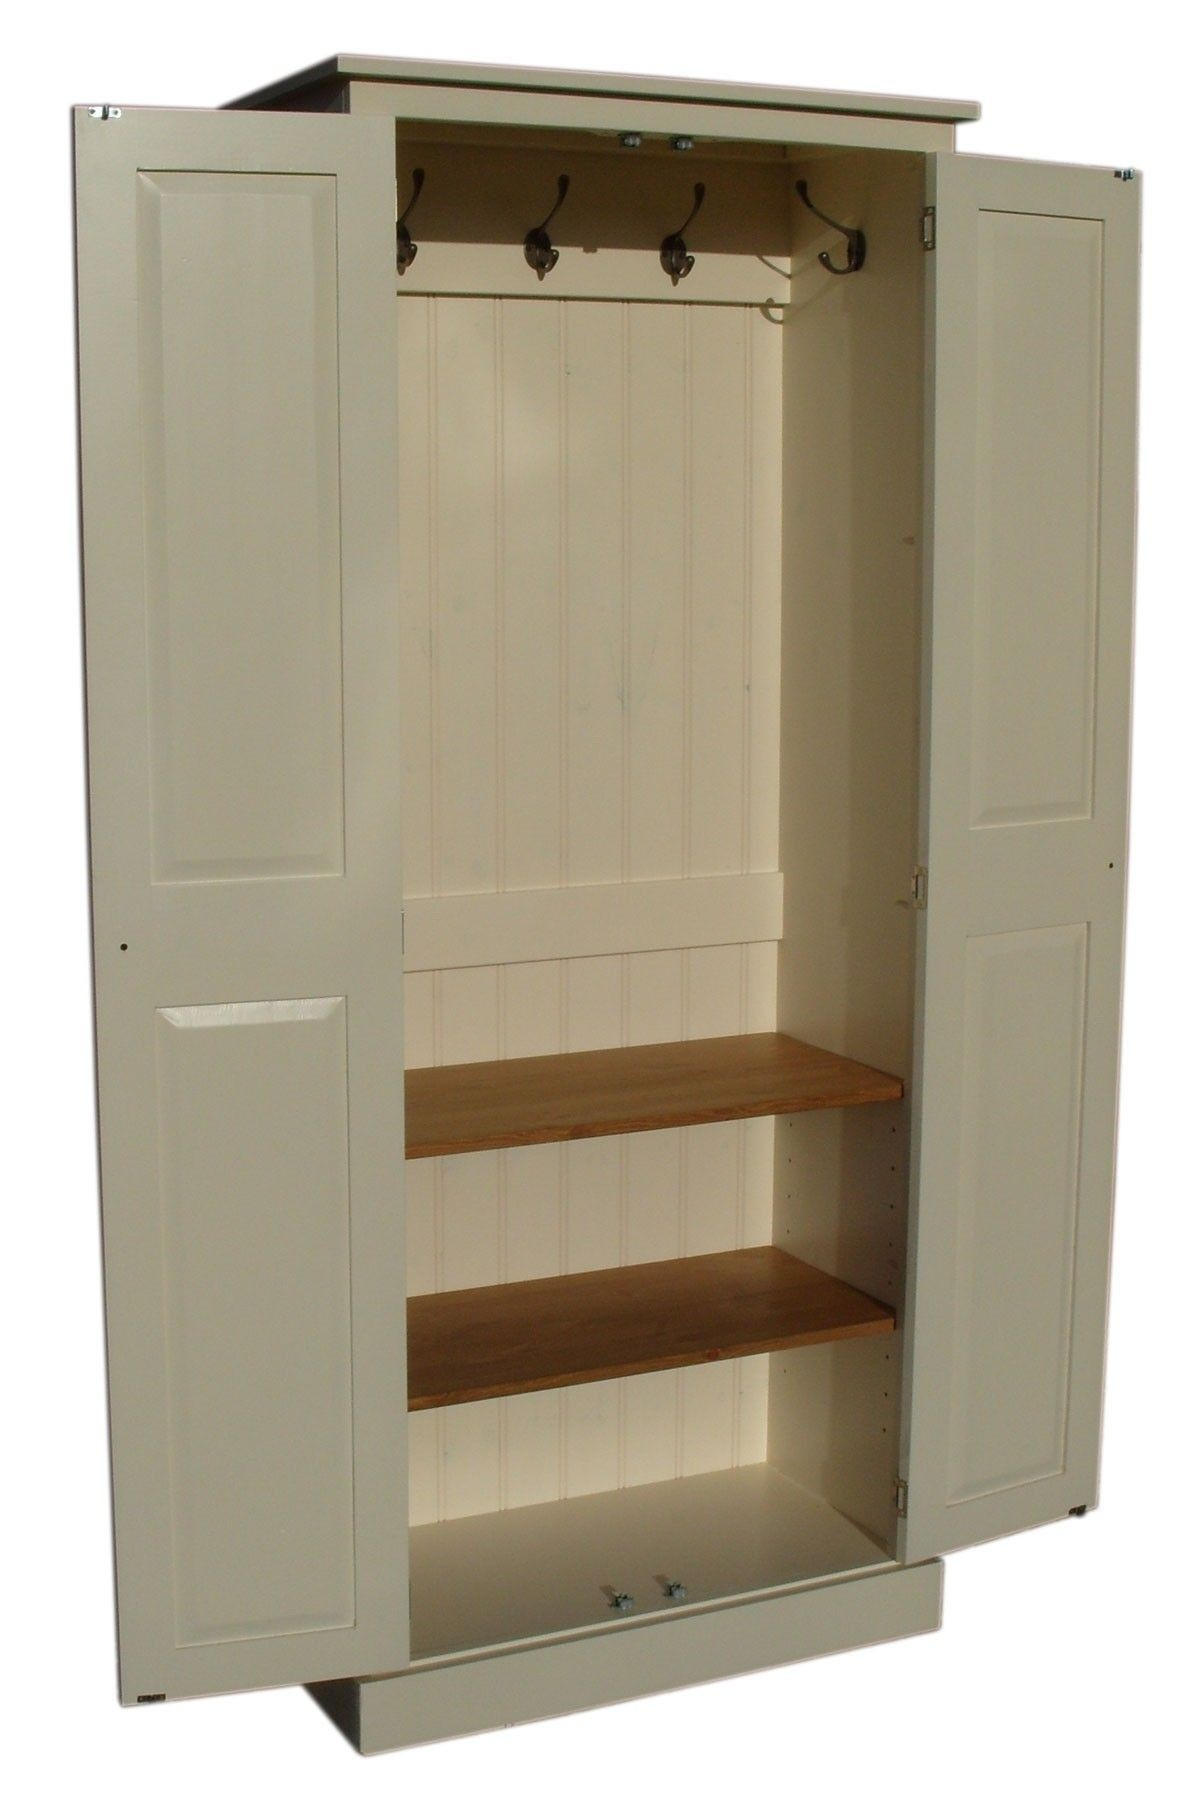 Coat and shoe storage Laundry Room Home Hall Coat Shoe Storage Cupboard Foter Hallway Coat Storage Ideas On Foter